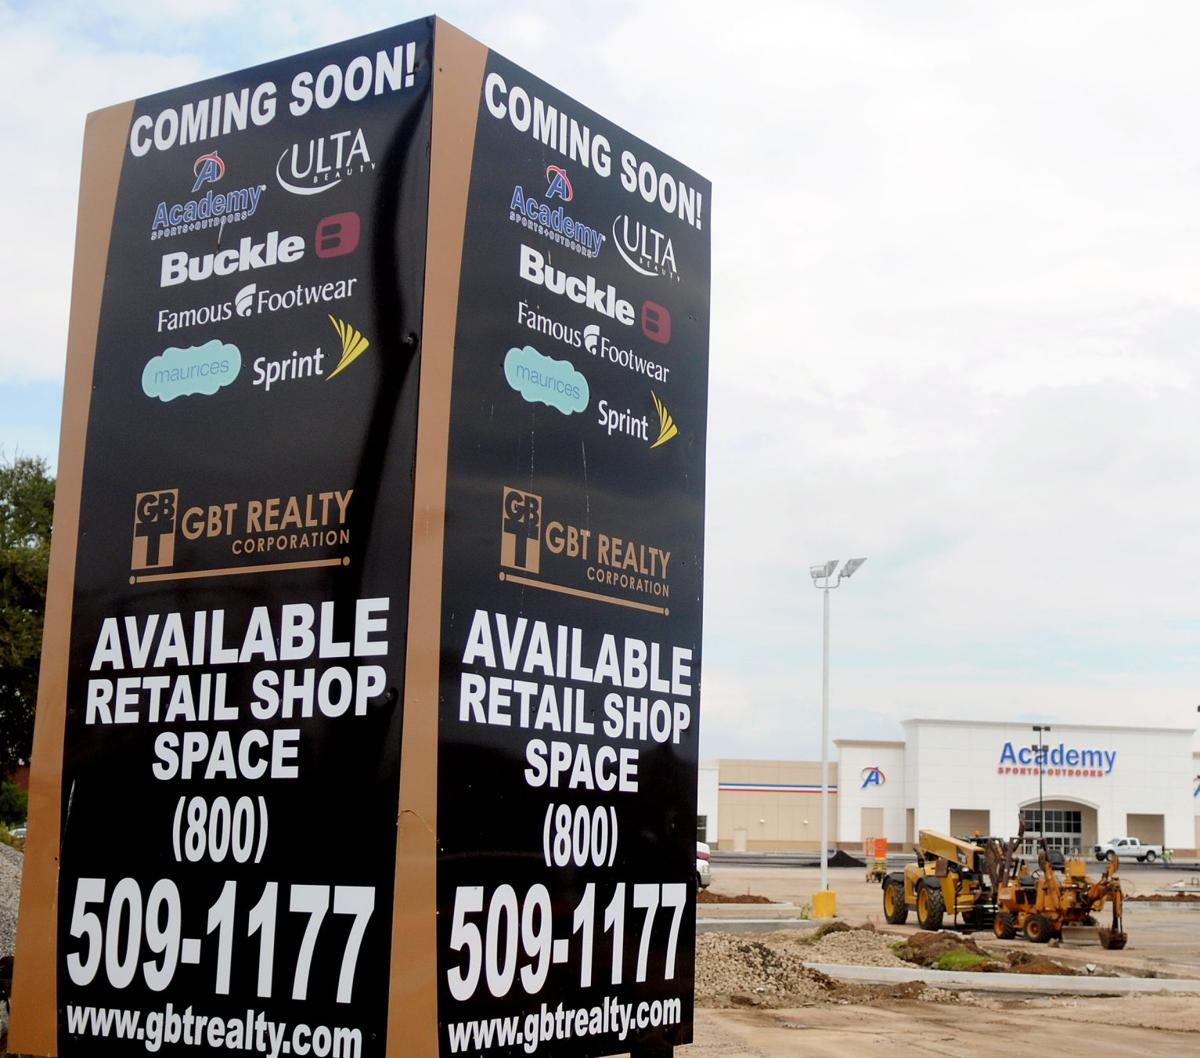 The Buckle And Famous Footwear Cur Businesses At Oakwood Mall Are Among S That Will Move Into Retail E By Academy Sports